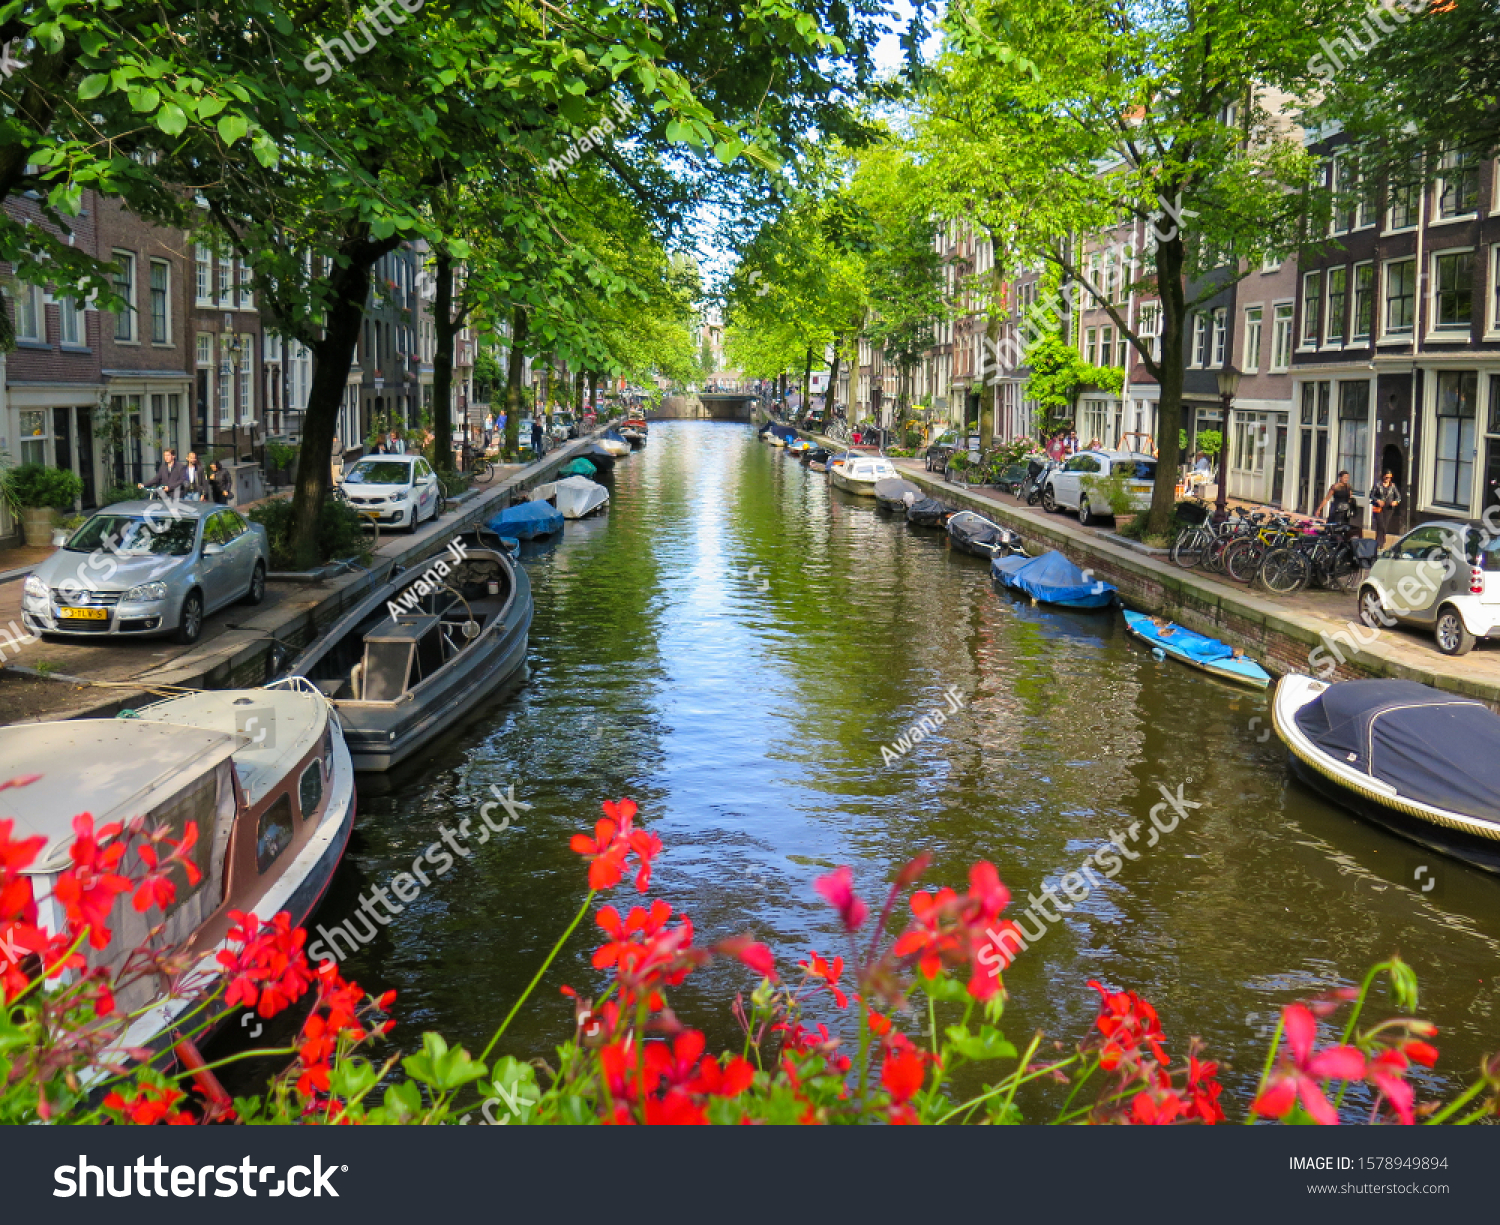 stock-photo-amsterdam-netherlands-august